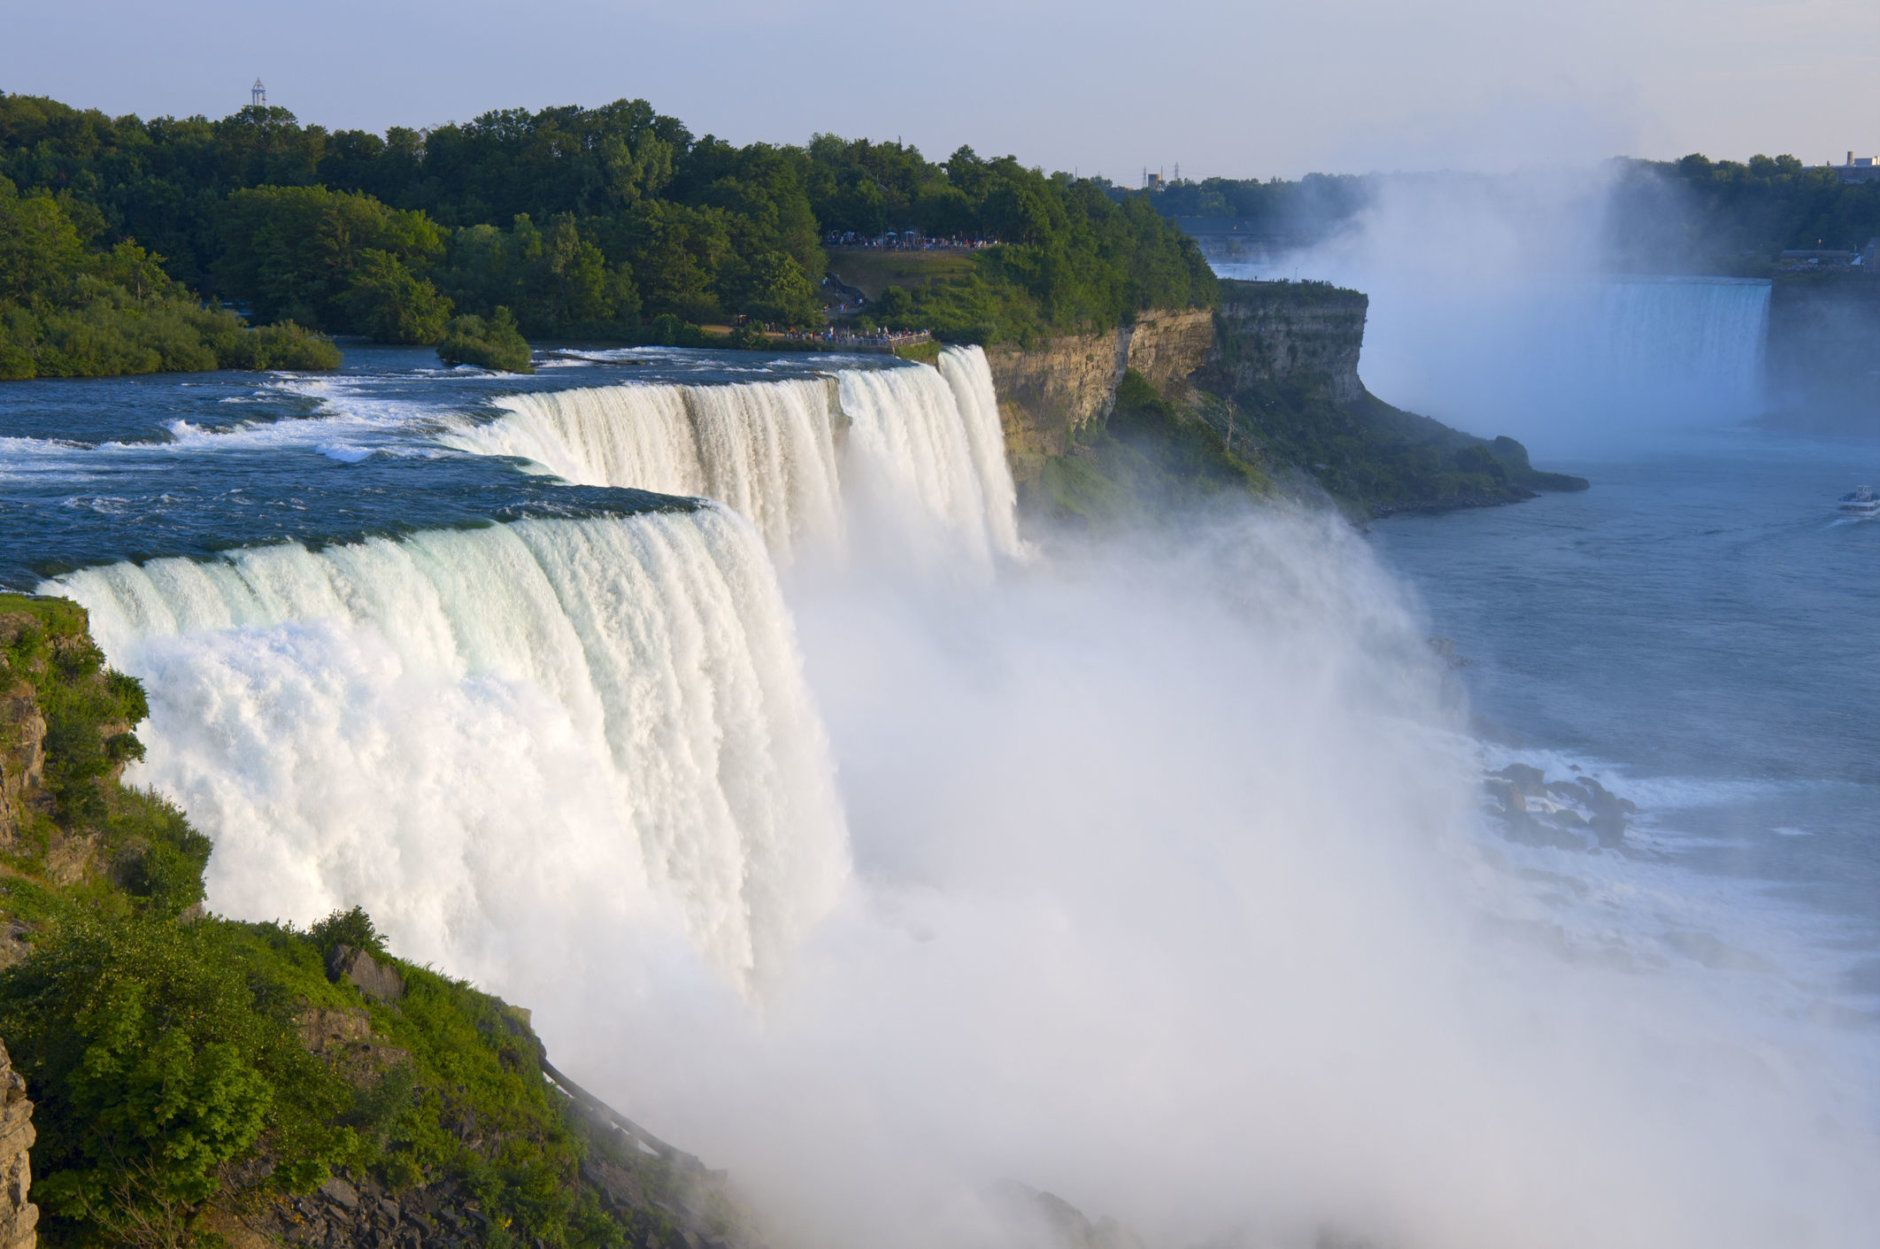 Atop American Falls from observation deck at Niagara Falls State Park in New York (Getty Images/iStockphoto)